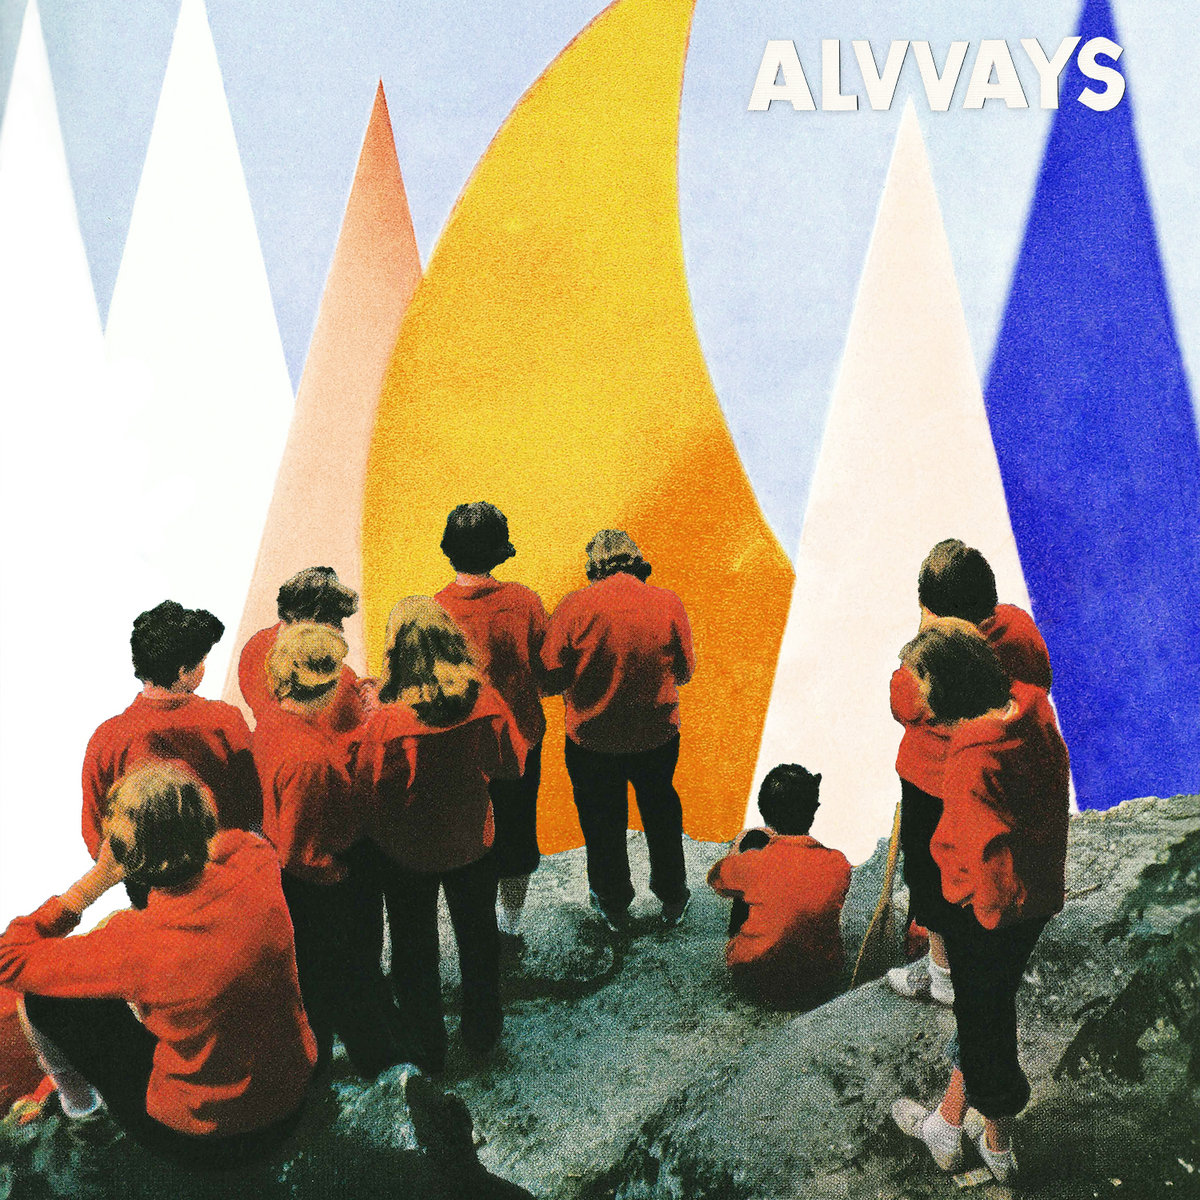 Alvvays antisocialites review In Undertow Saved By A Waif